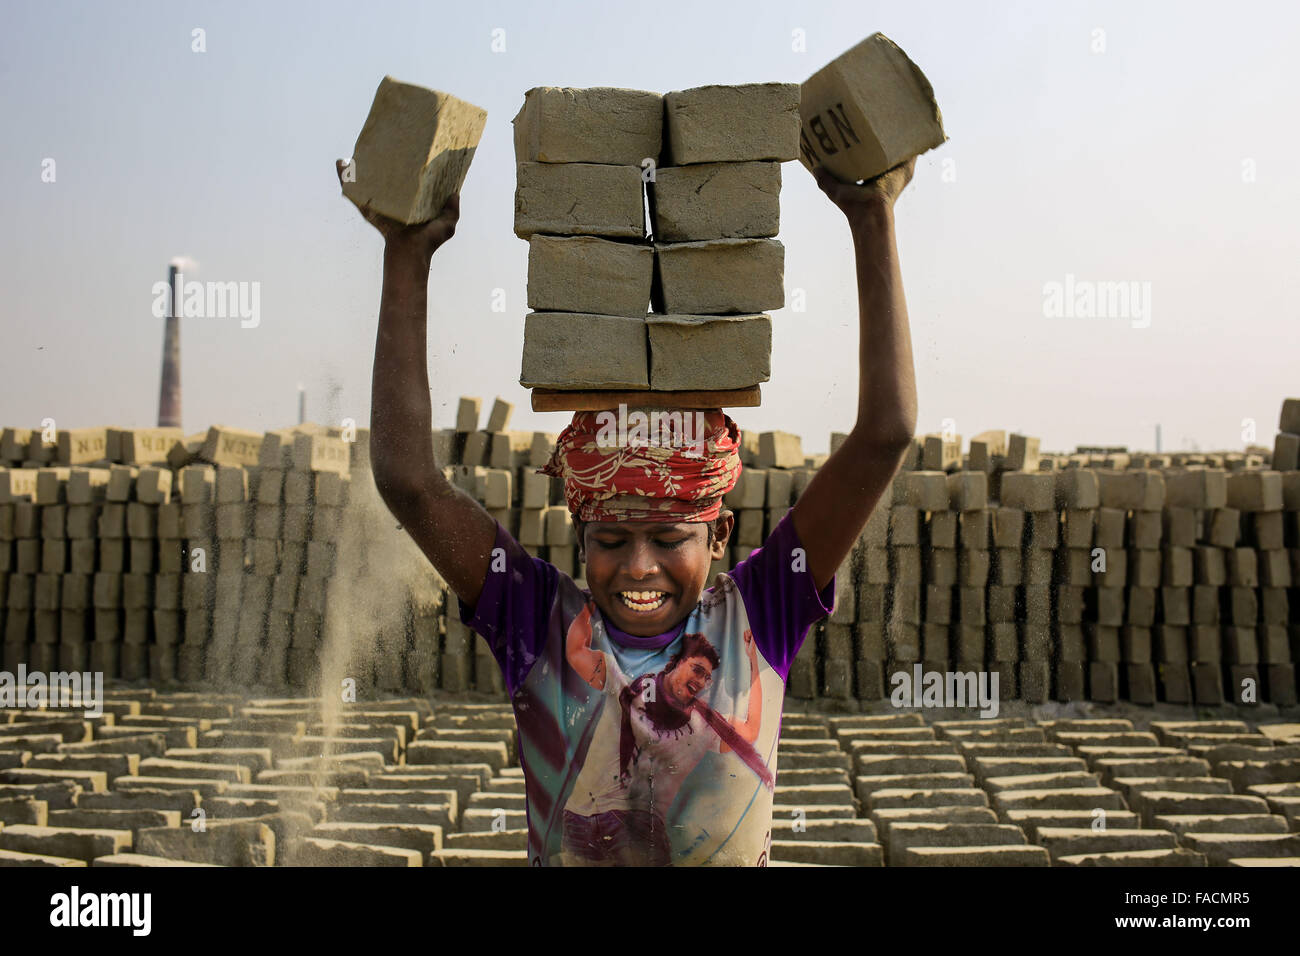 Dhaka, Bangladesh. 27th Dec, 2015. SAJIB is a 12 year old boy who is working in a brick yard. His parents also work - Stock Image